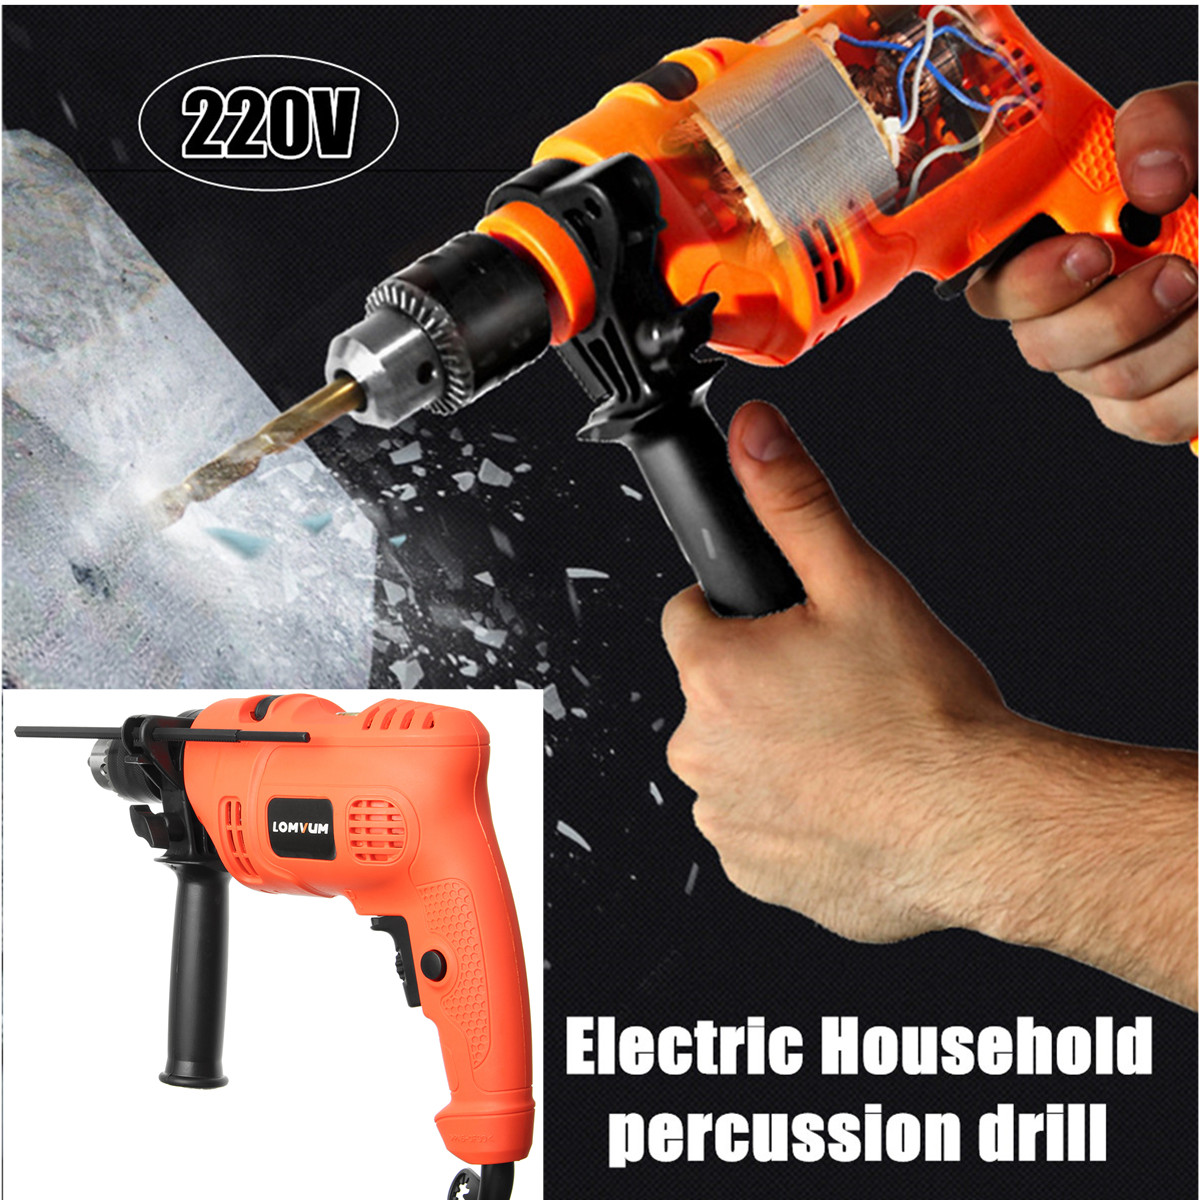 Percussion Electric Drill Power Drills Impact Drill with 66 Pcs Sleeve Household Home Decoration 220V 600W multi purpose impact drill for household use la414413 upholstery drilling wall percussion impact drill set power tools 220v 810w